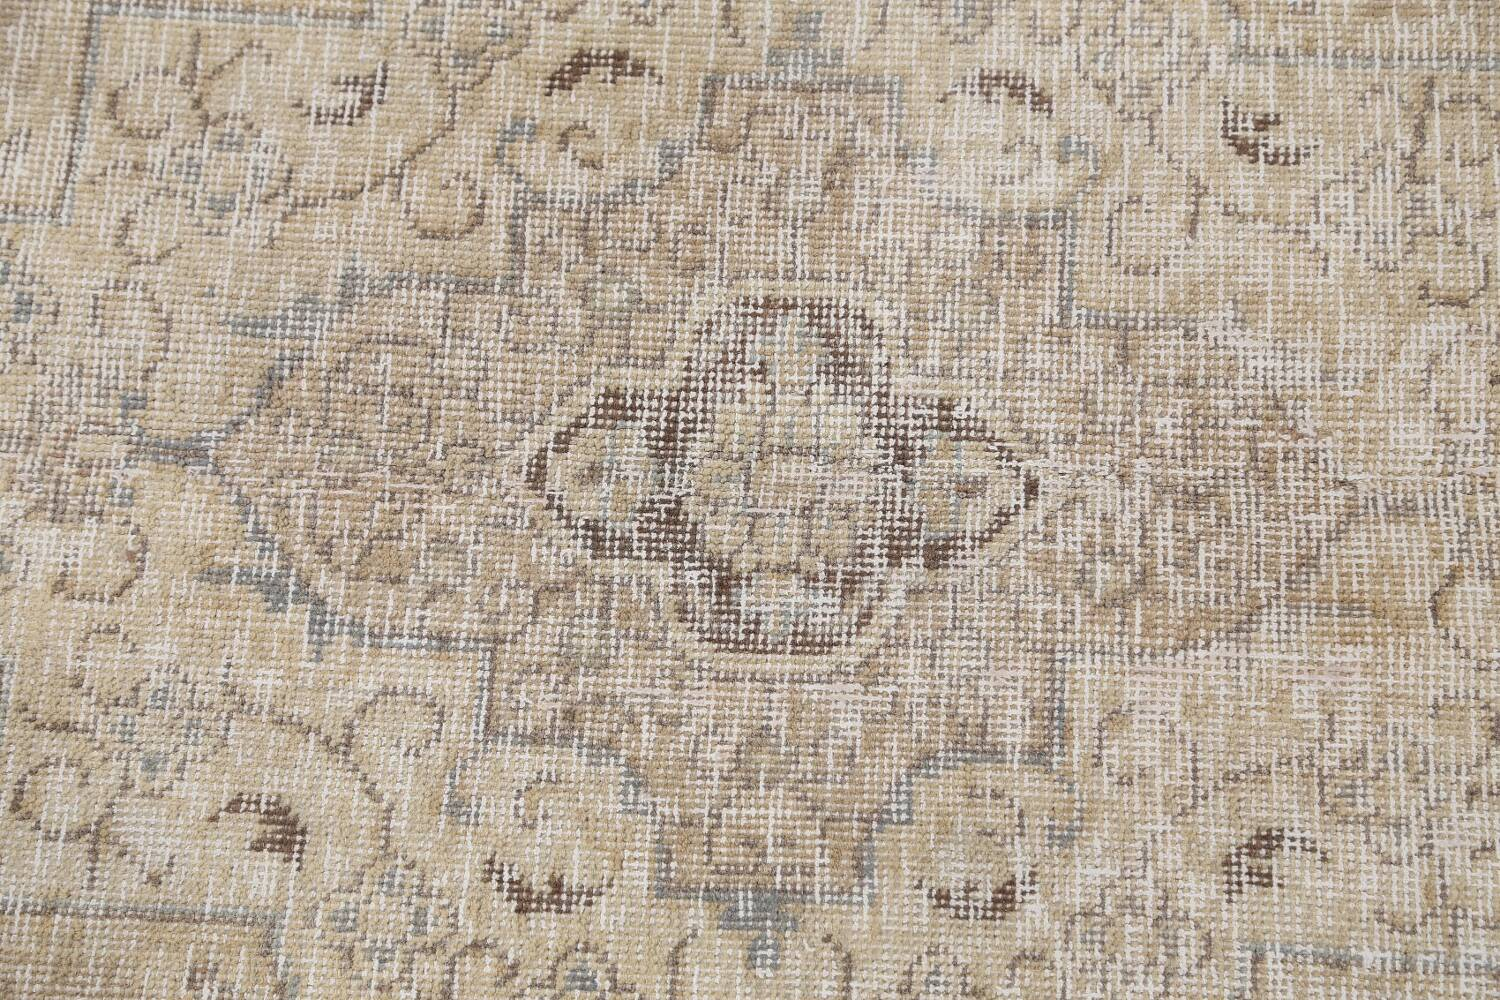 Antique Muted Floral Tabriz Persian Area Rug 9x13 image 11